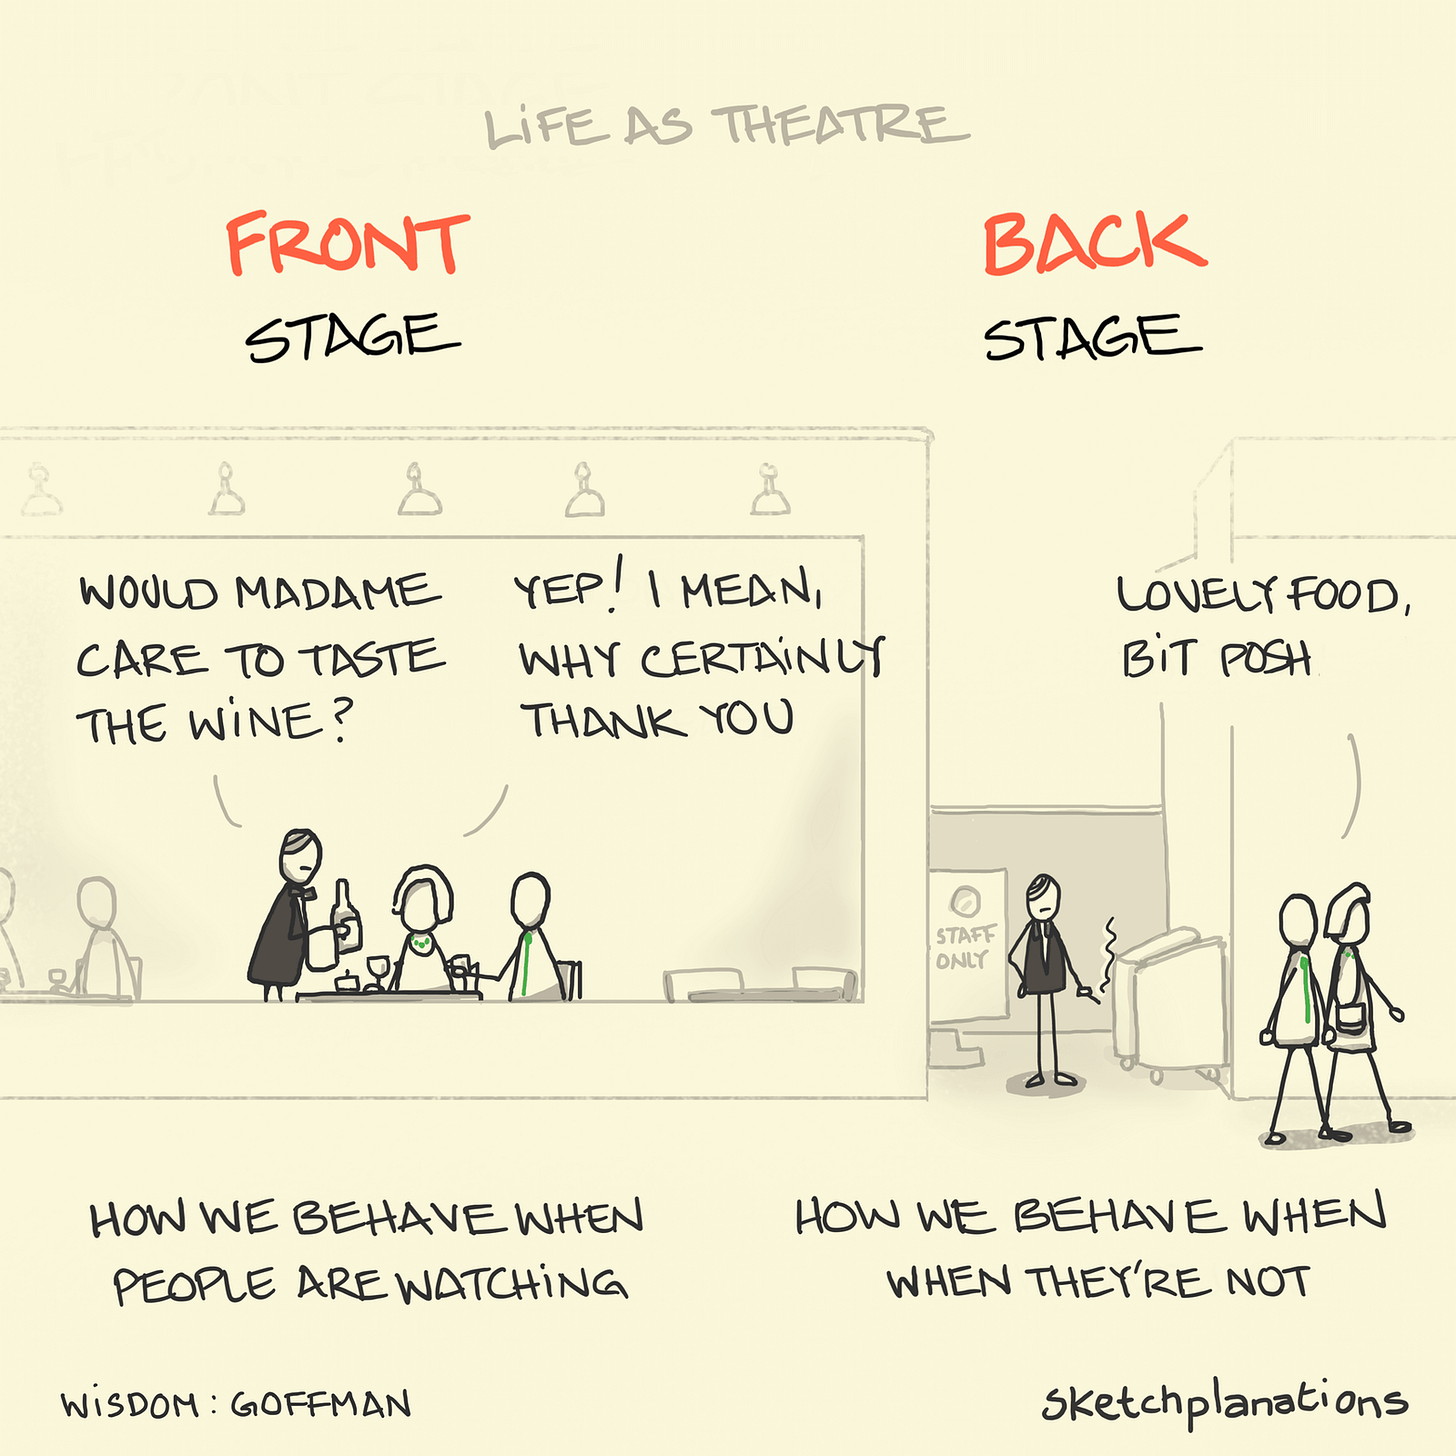 Front stage, back stage - Sketchplanations